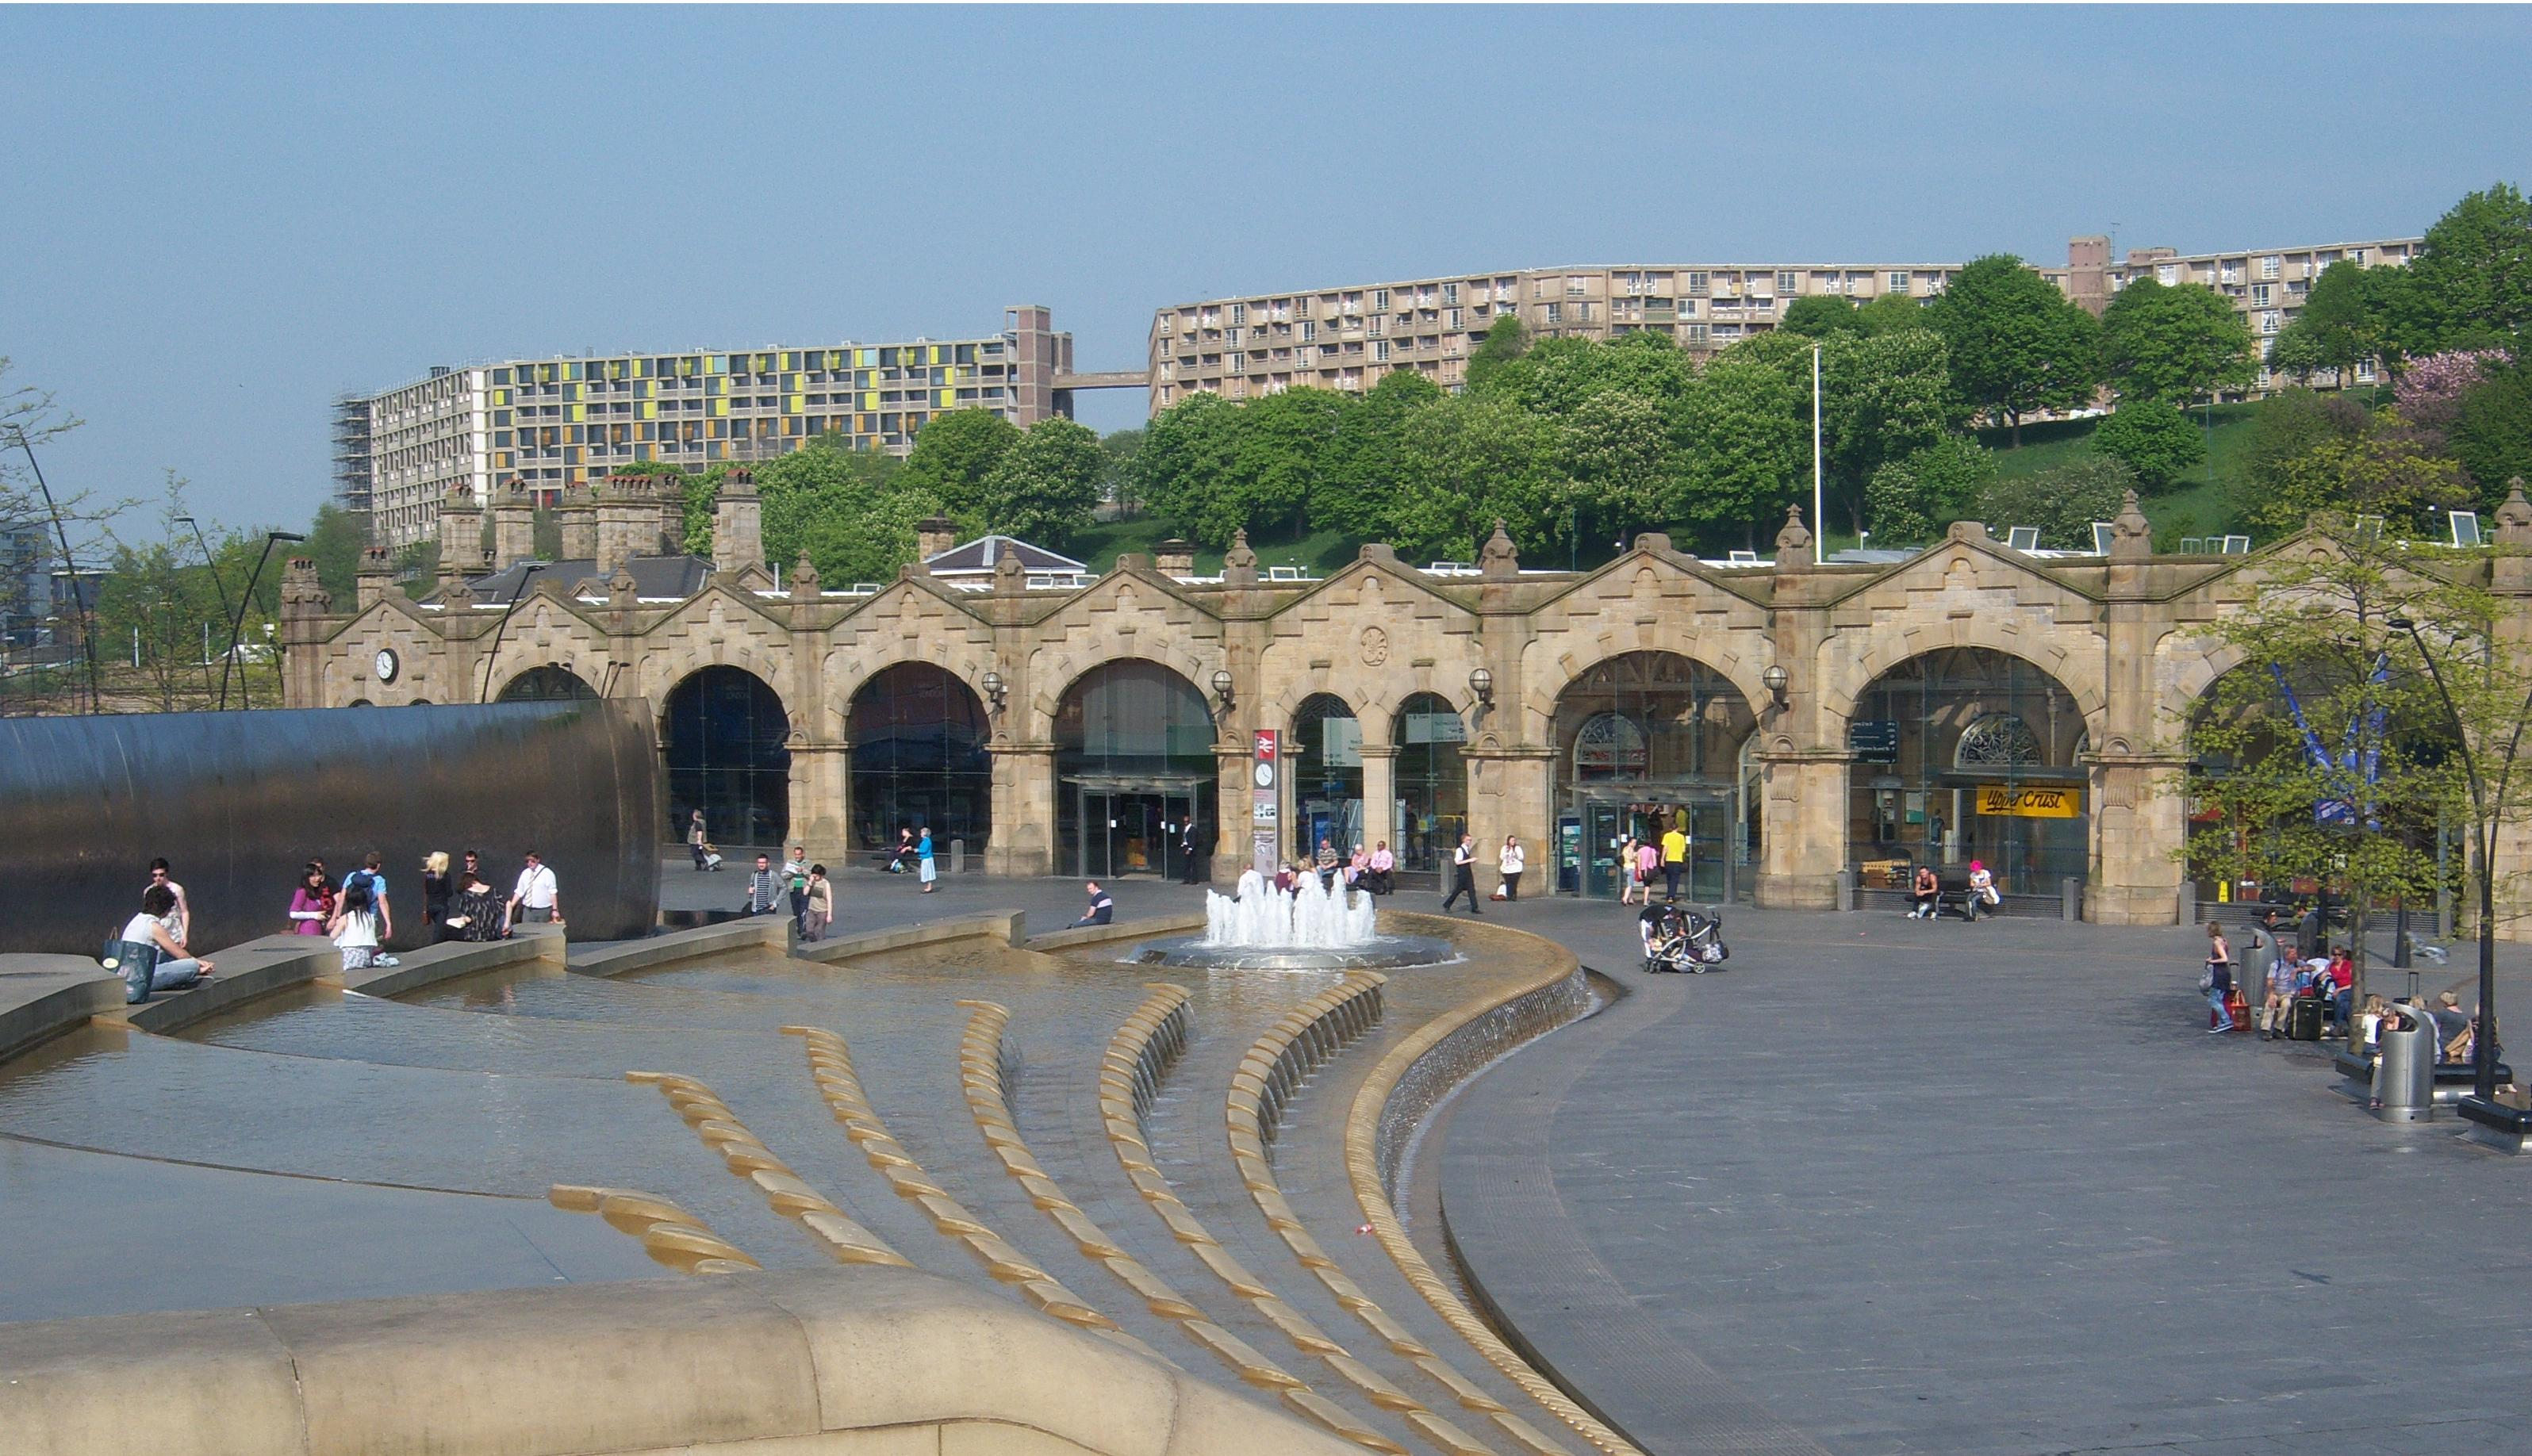 an image of the Sheffield Railway Station